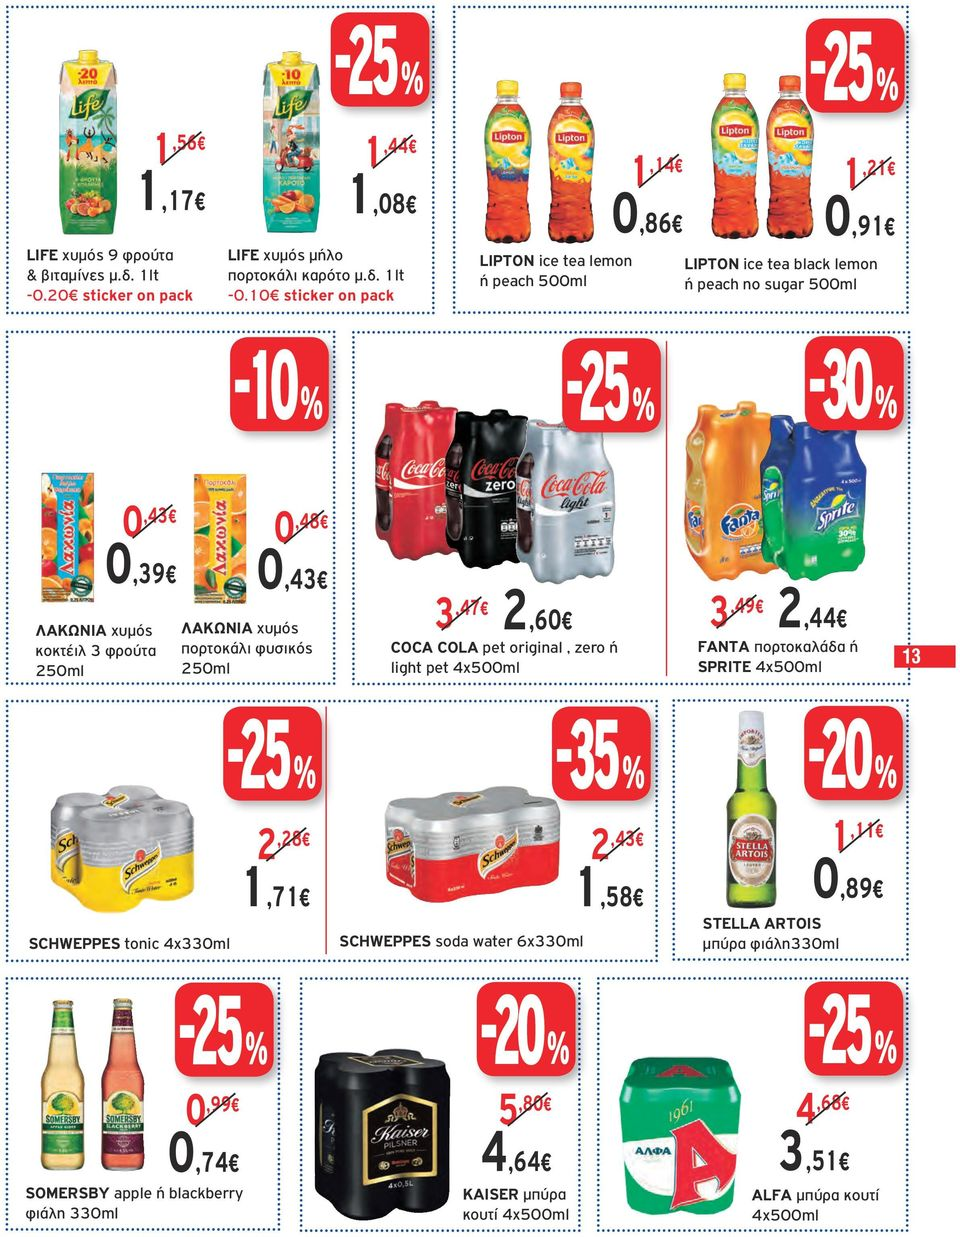 10 sticker on pack LIPTON ice tea lemon ή peach 500ml 1,14 1,21 0,86 0,91 LIPTON ice tea black lemon ή peach no sugar 500ml -10 % -25 % ΛΑΚΩΝΙΑ χυμός κοκτέιλ 3 φρούτα 250ml 0,43 0,48